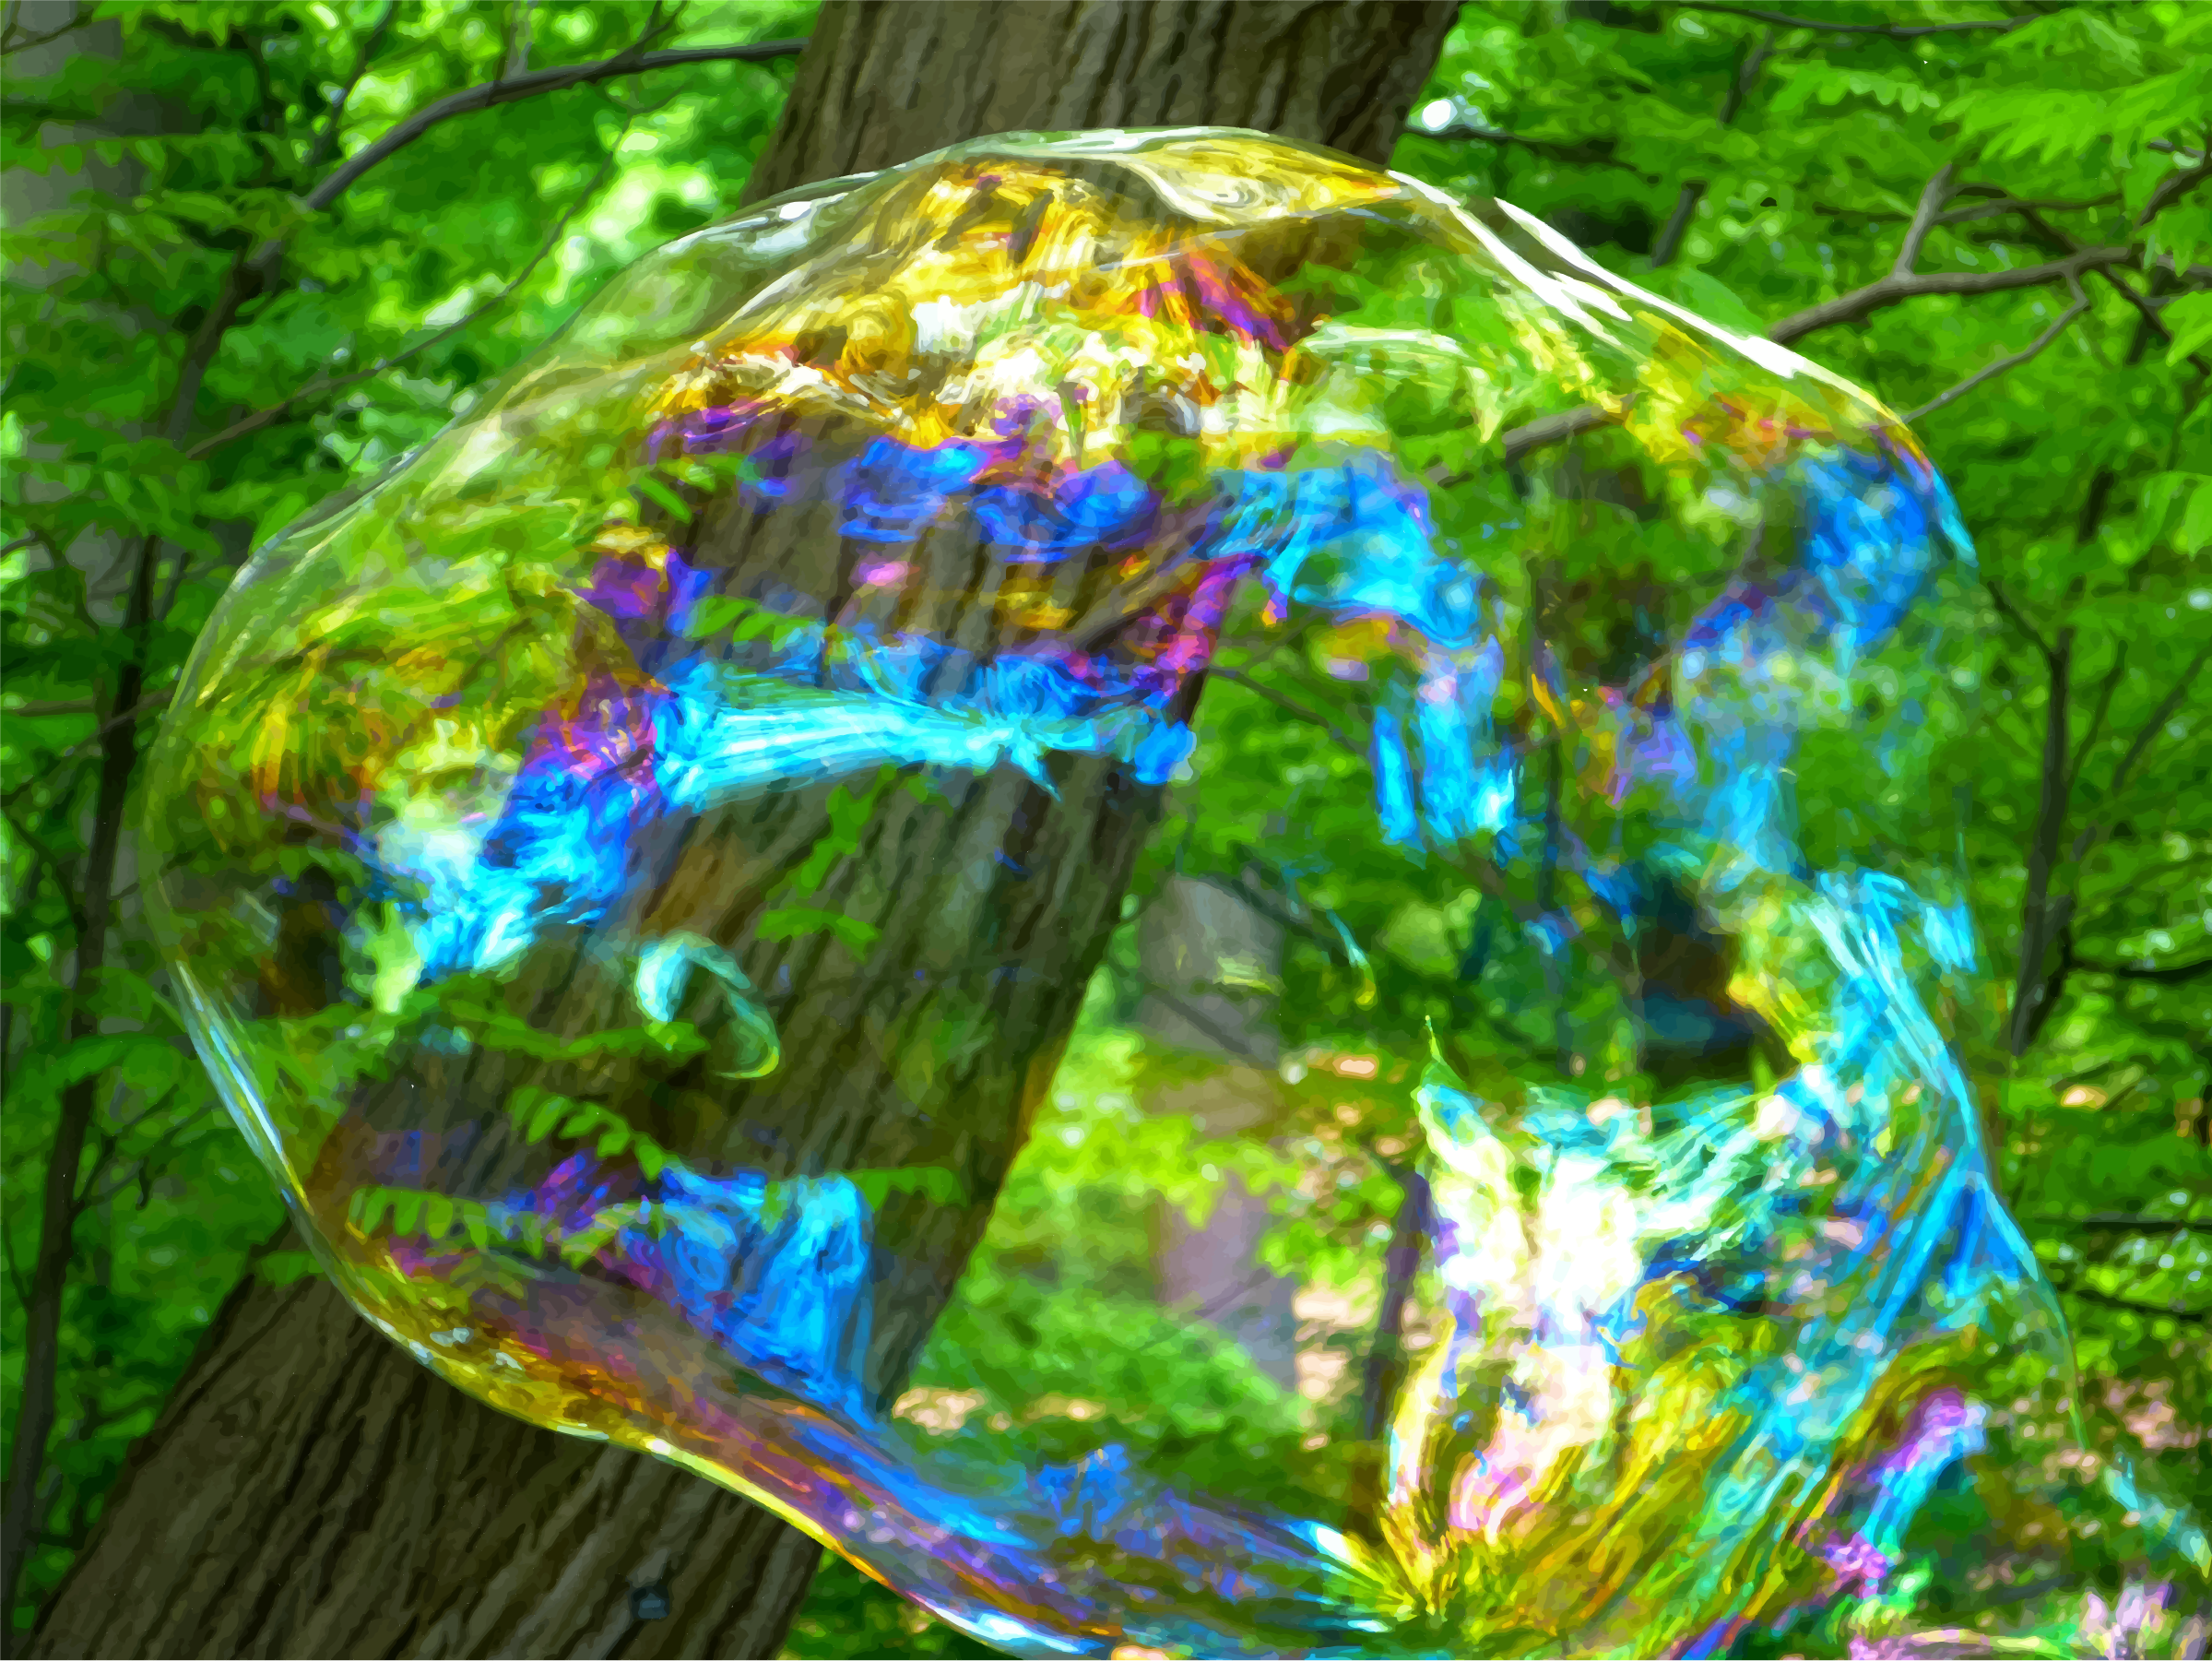 Iridescent Bubble Burst (Daily Sketch 32) by GDJ